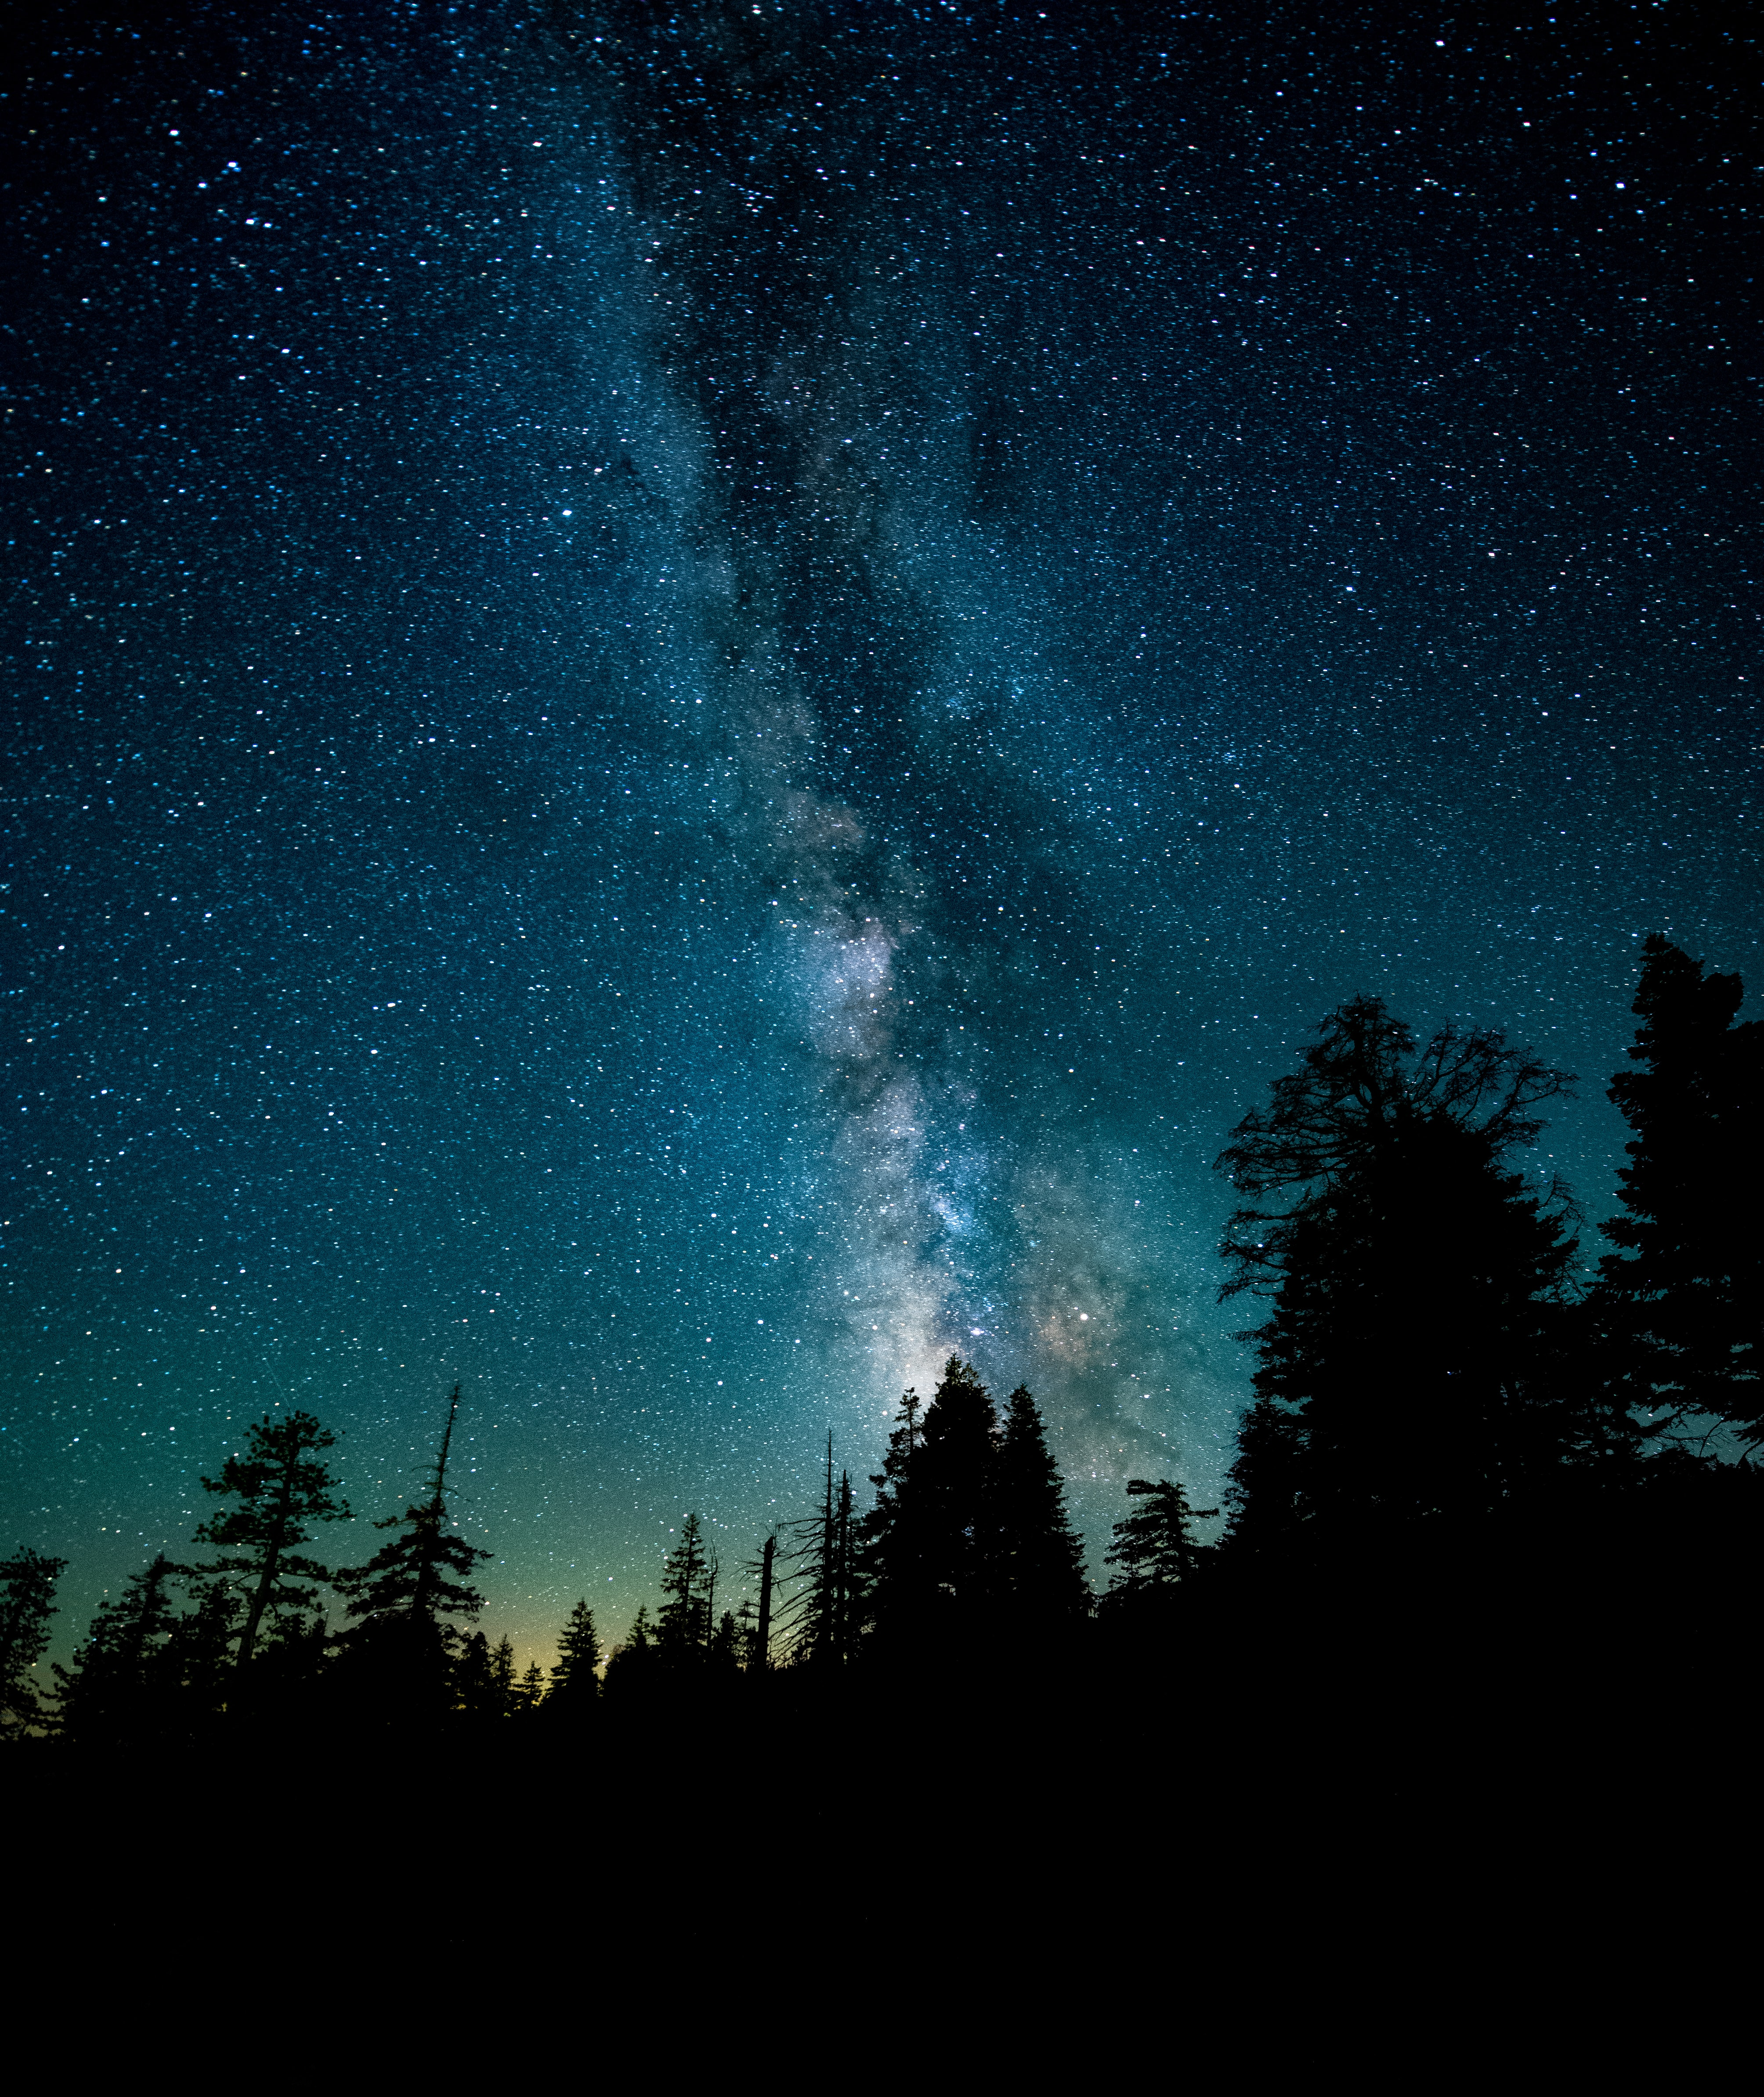 The Milky Way stands out clearly in the night sky over a forest.